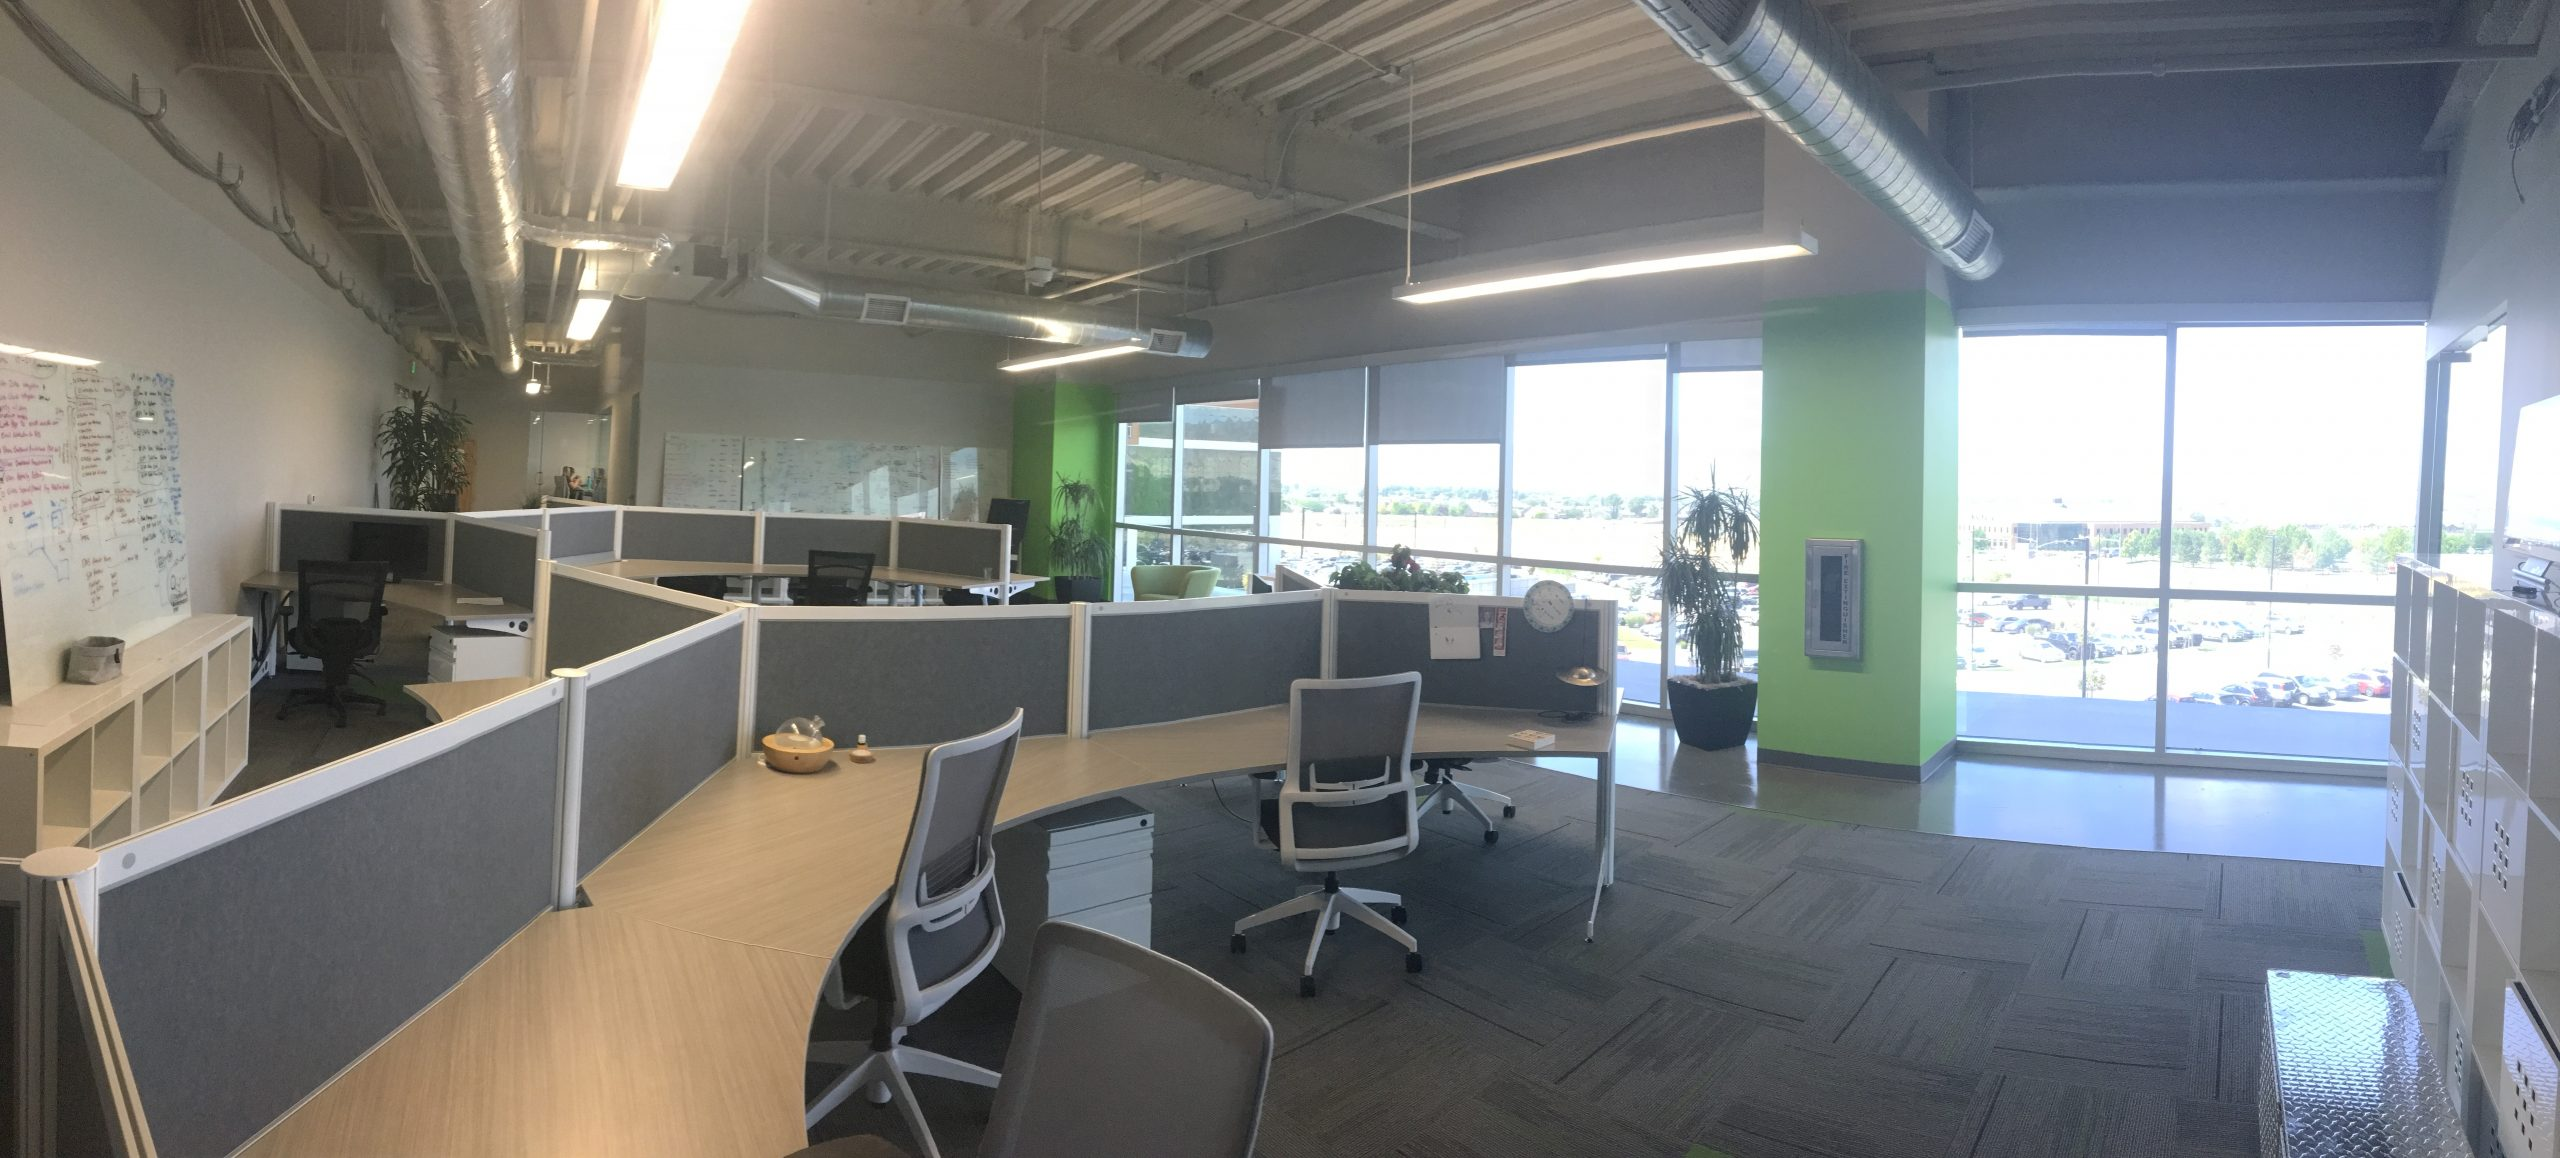 Furnished office space utah